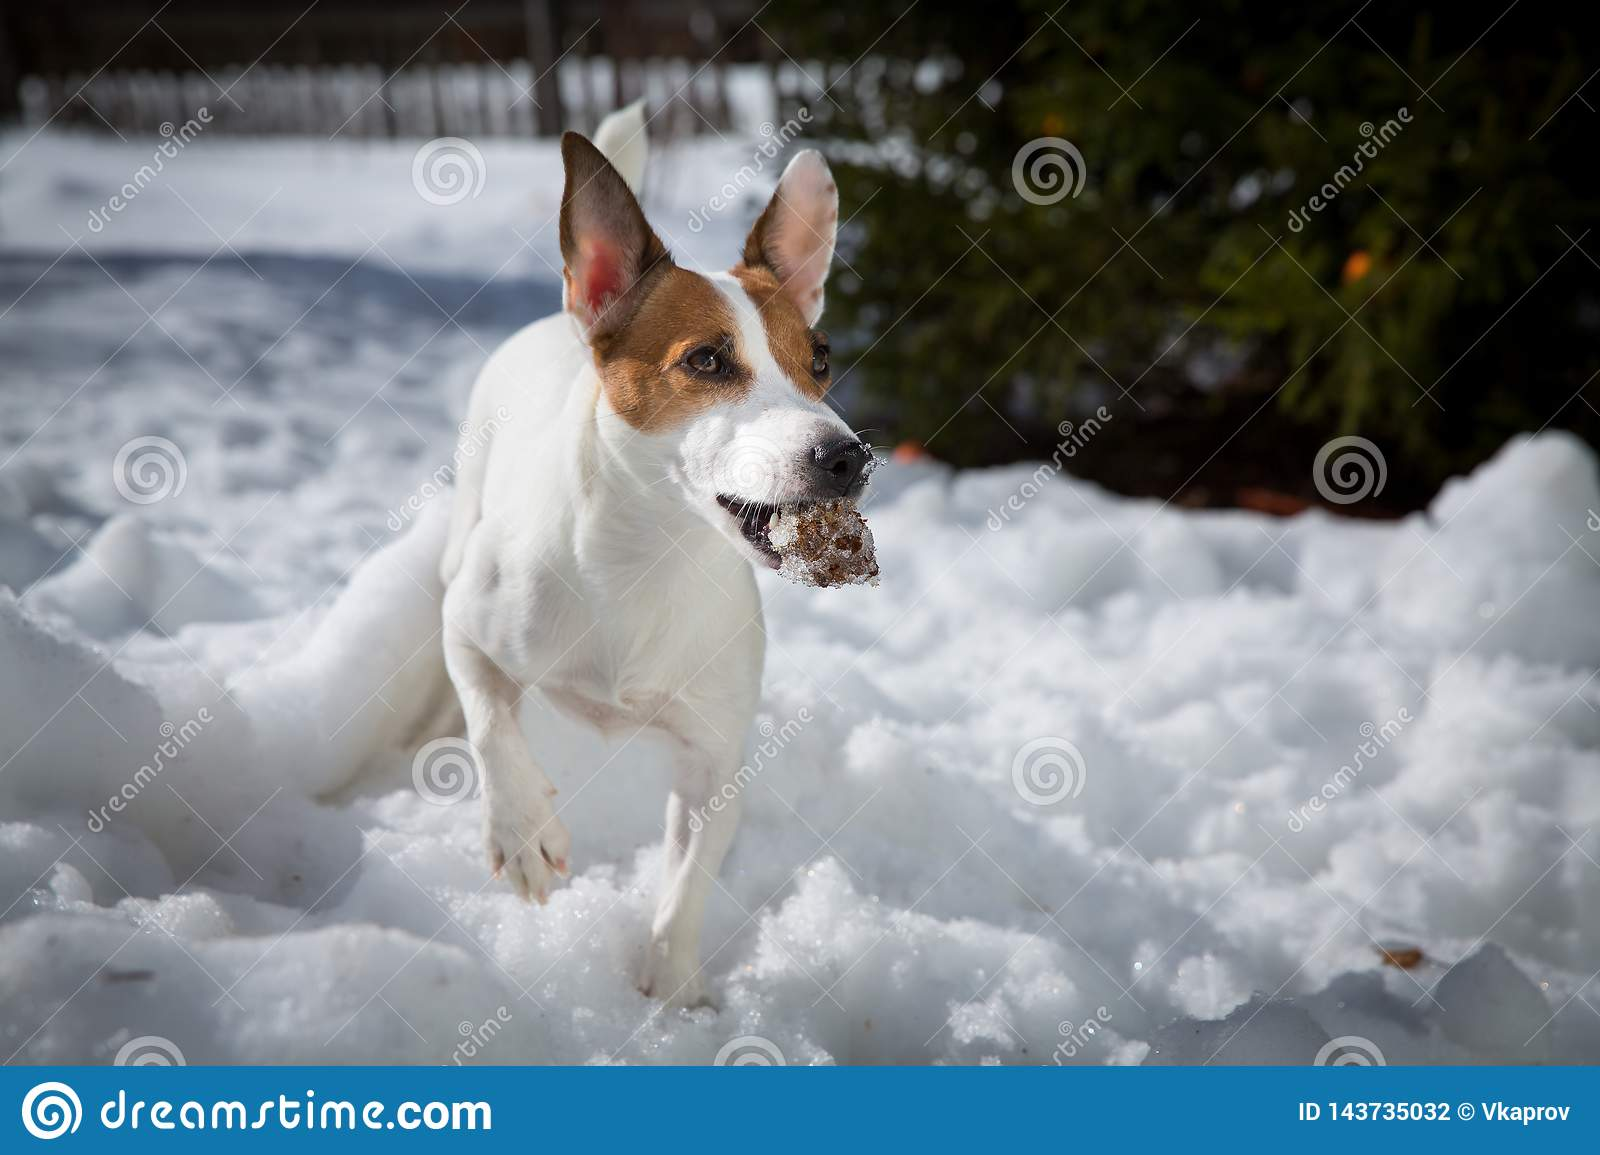 A dog with a bump in the snow